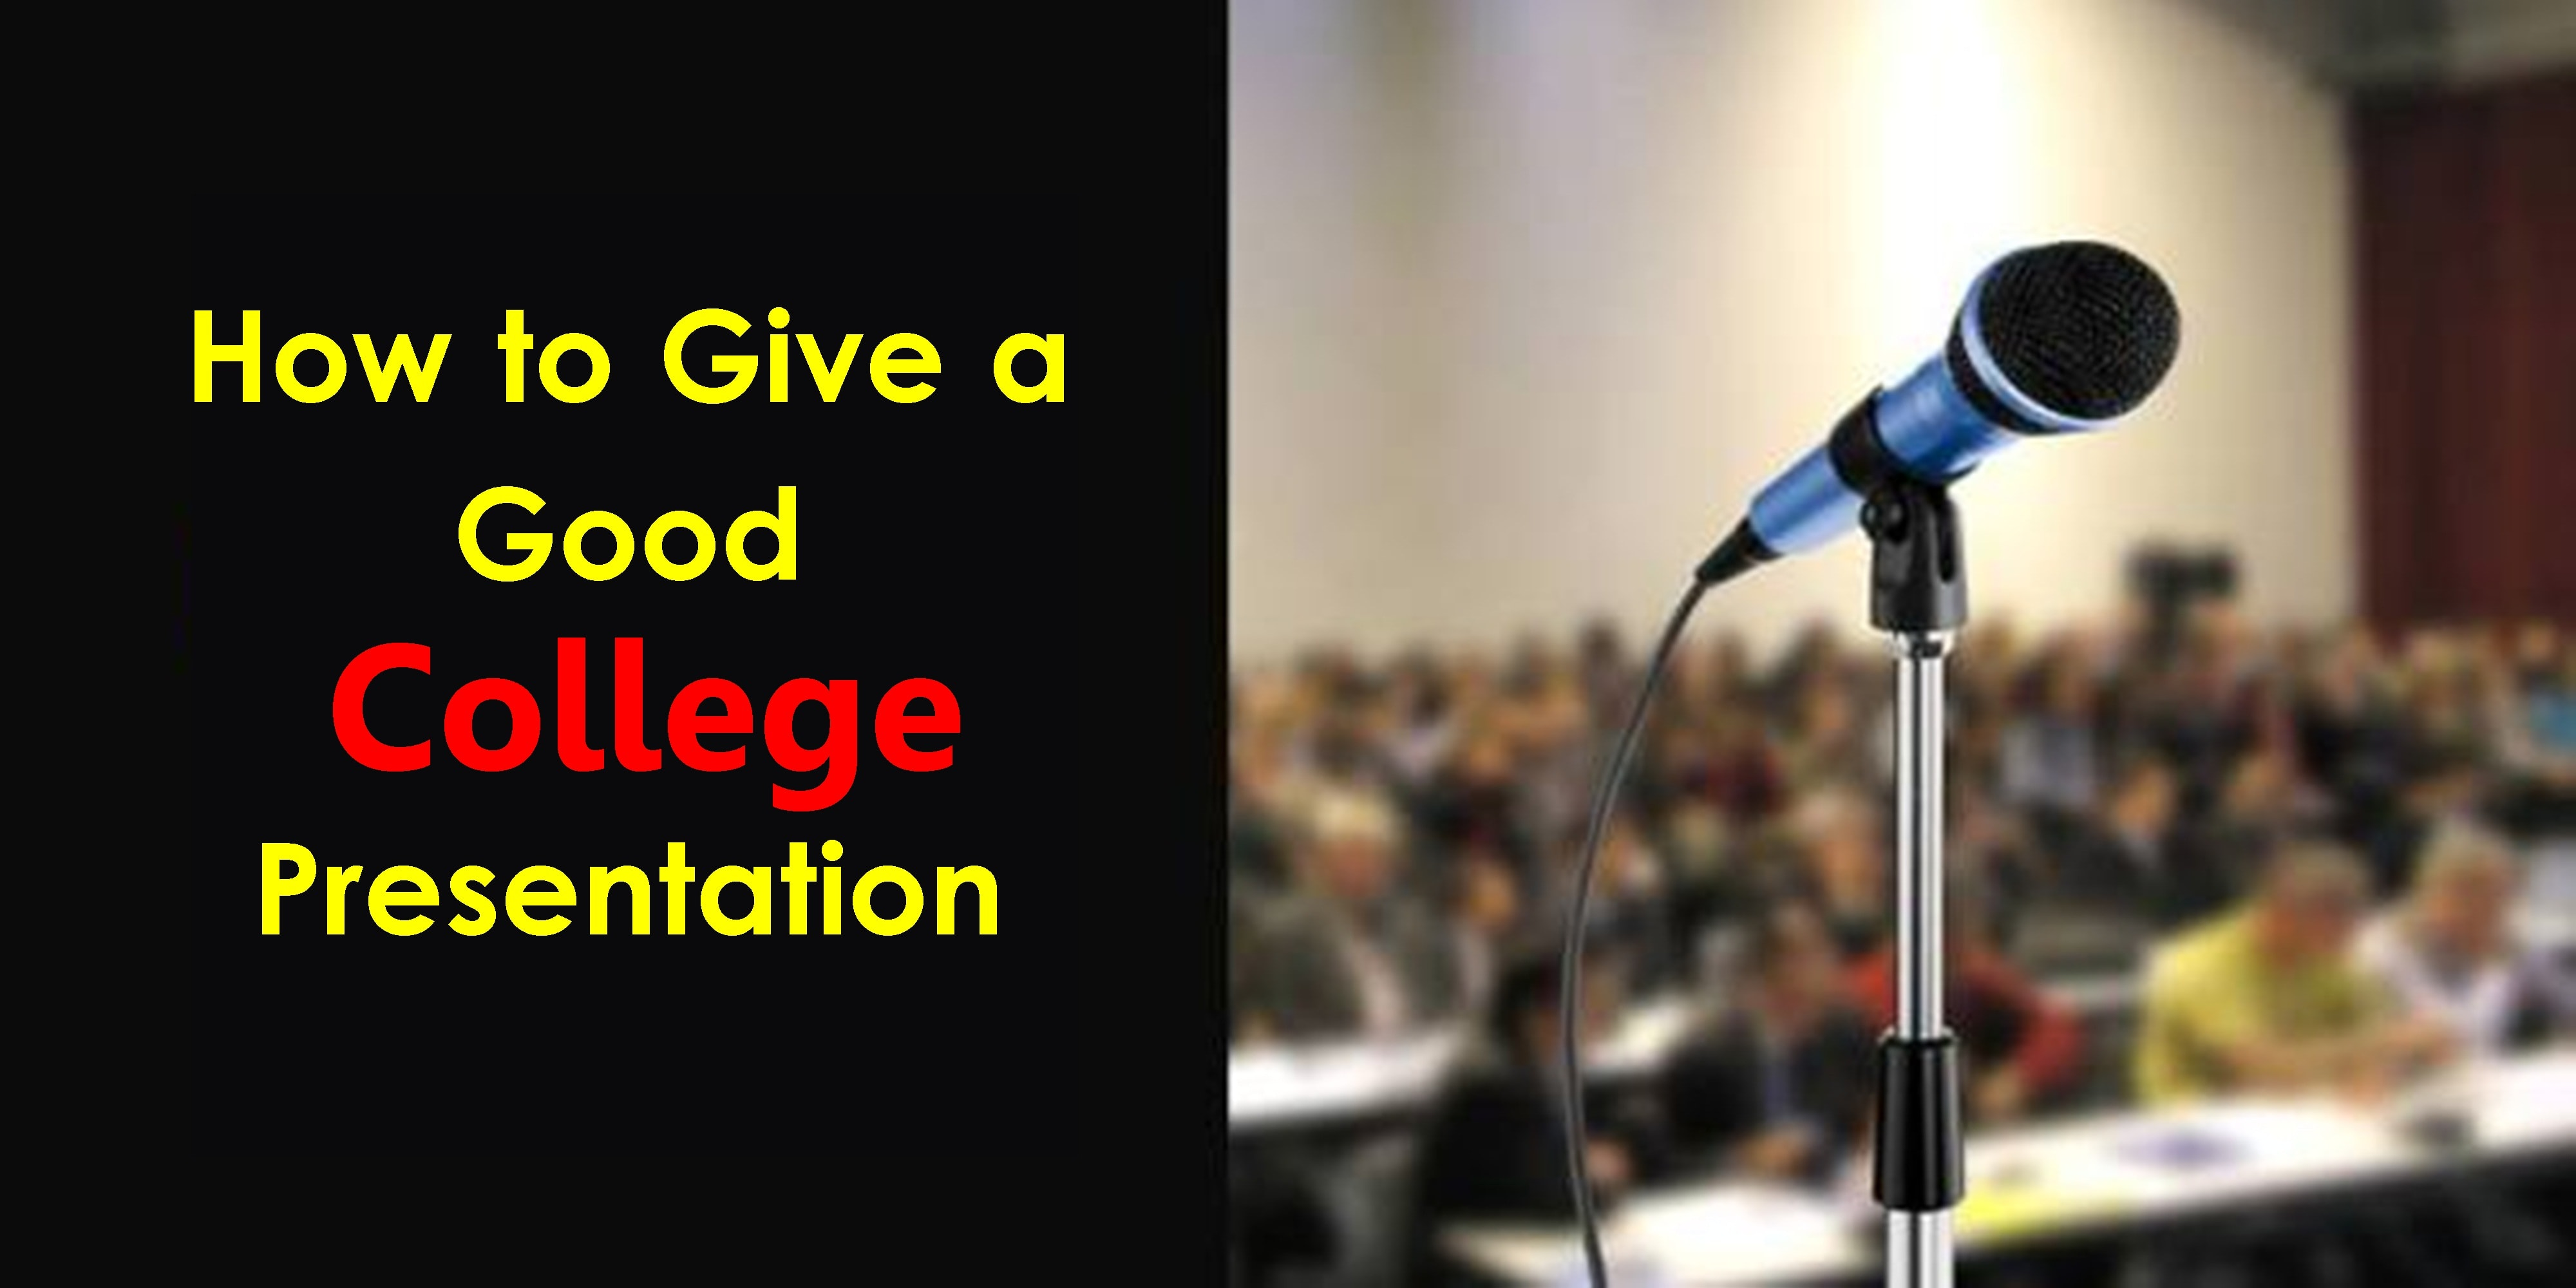 How to Give a Good College Presentation?